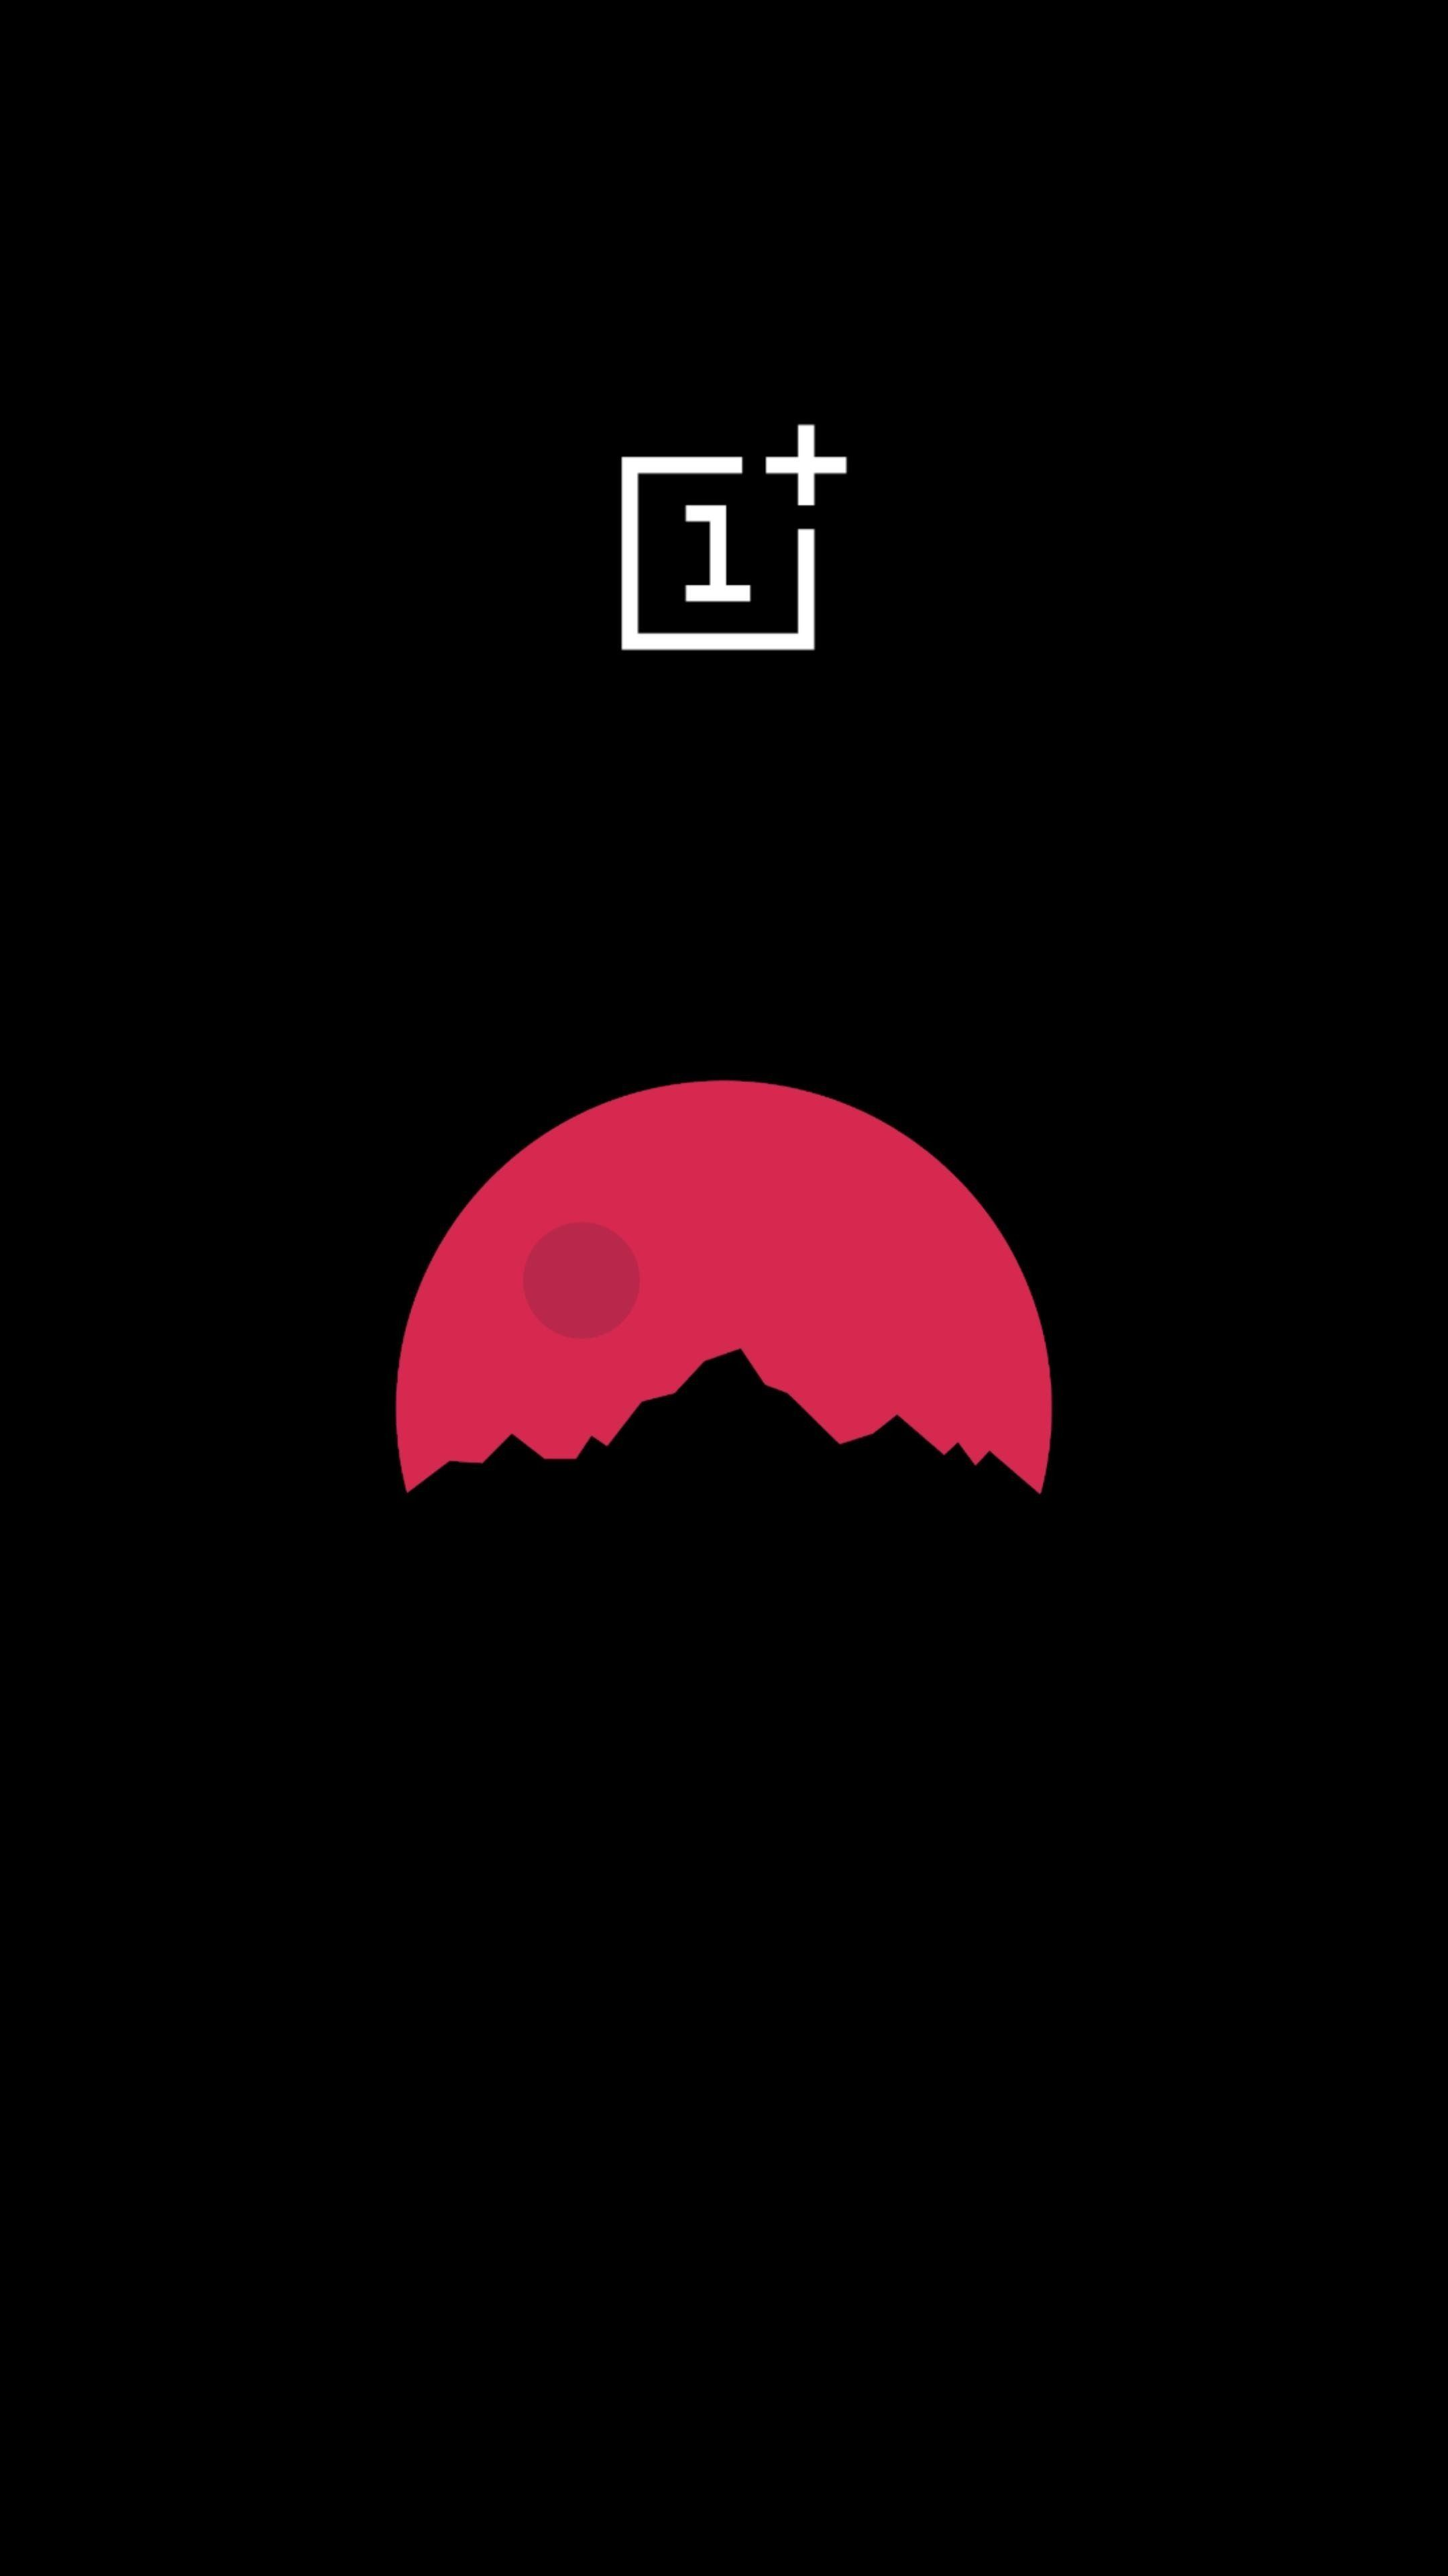 This OnePlus wallpaper